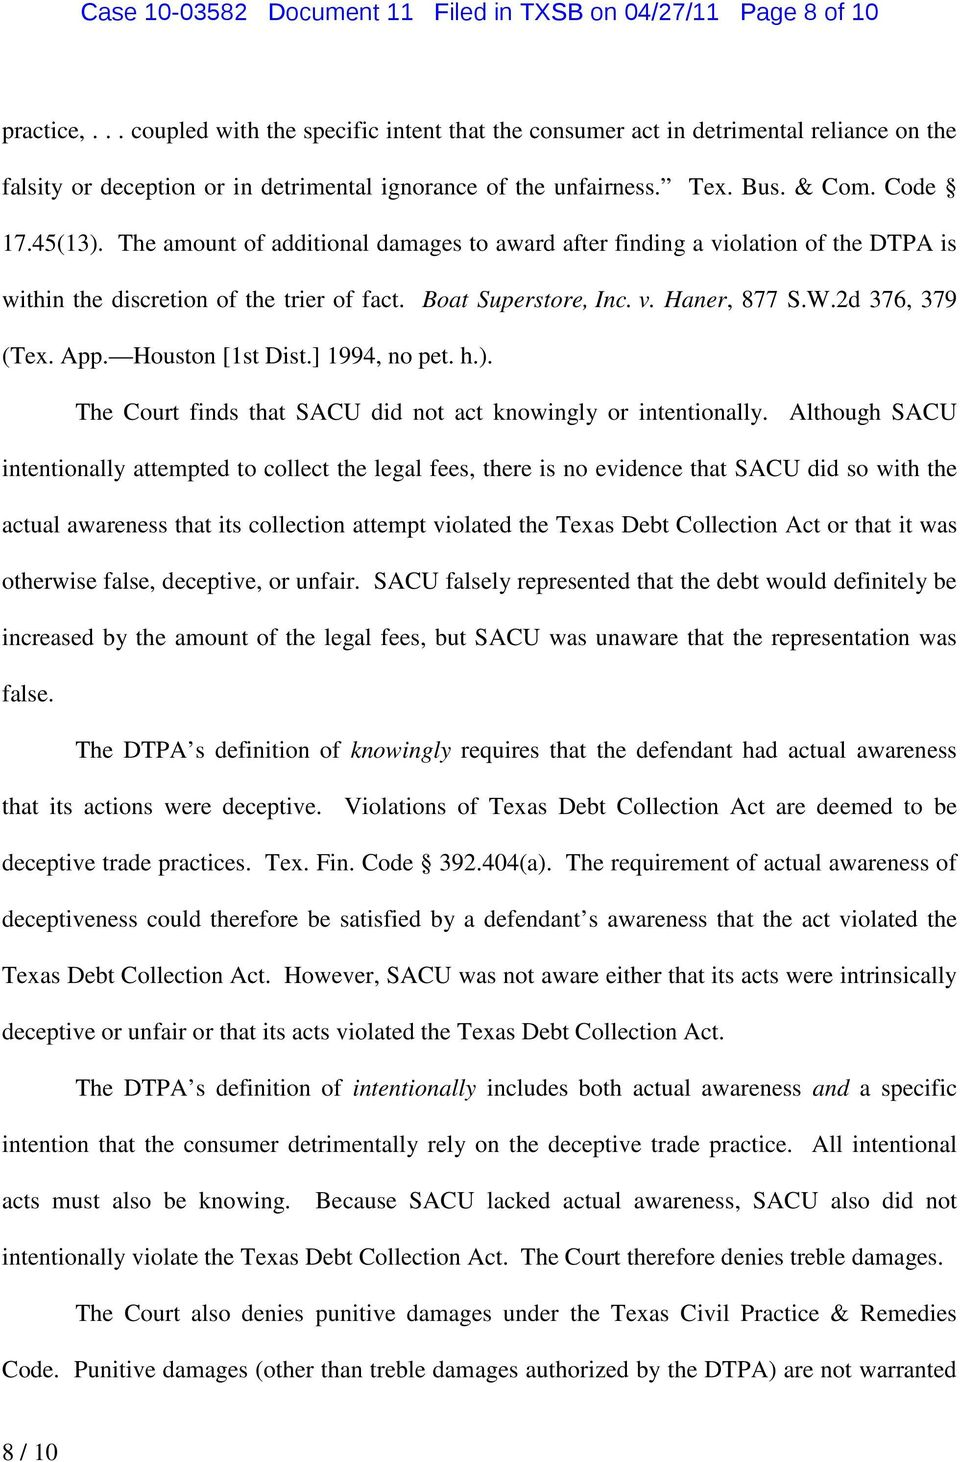 The amount of additional damages to award after finding a violation of the DTPA is within the discretion of the trier of fact. Boat Superstore, Inc. v. Haner, 877 S.W.2d 376, 379 (Tex. App.